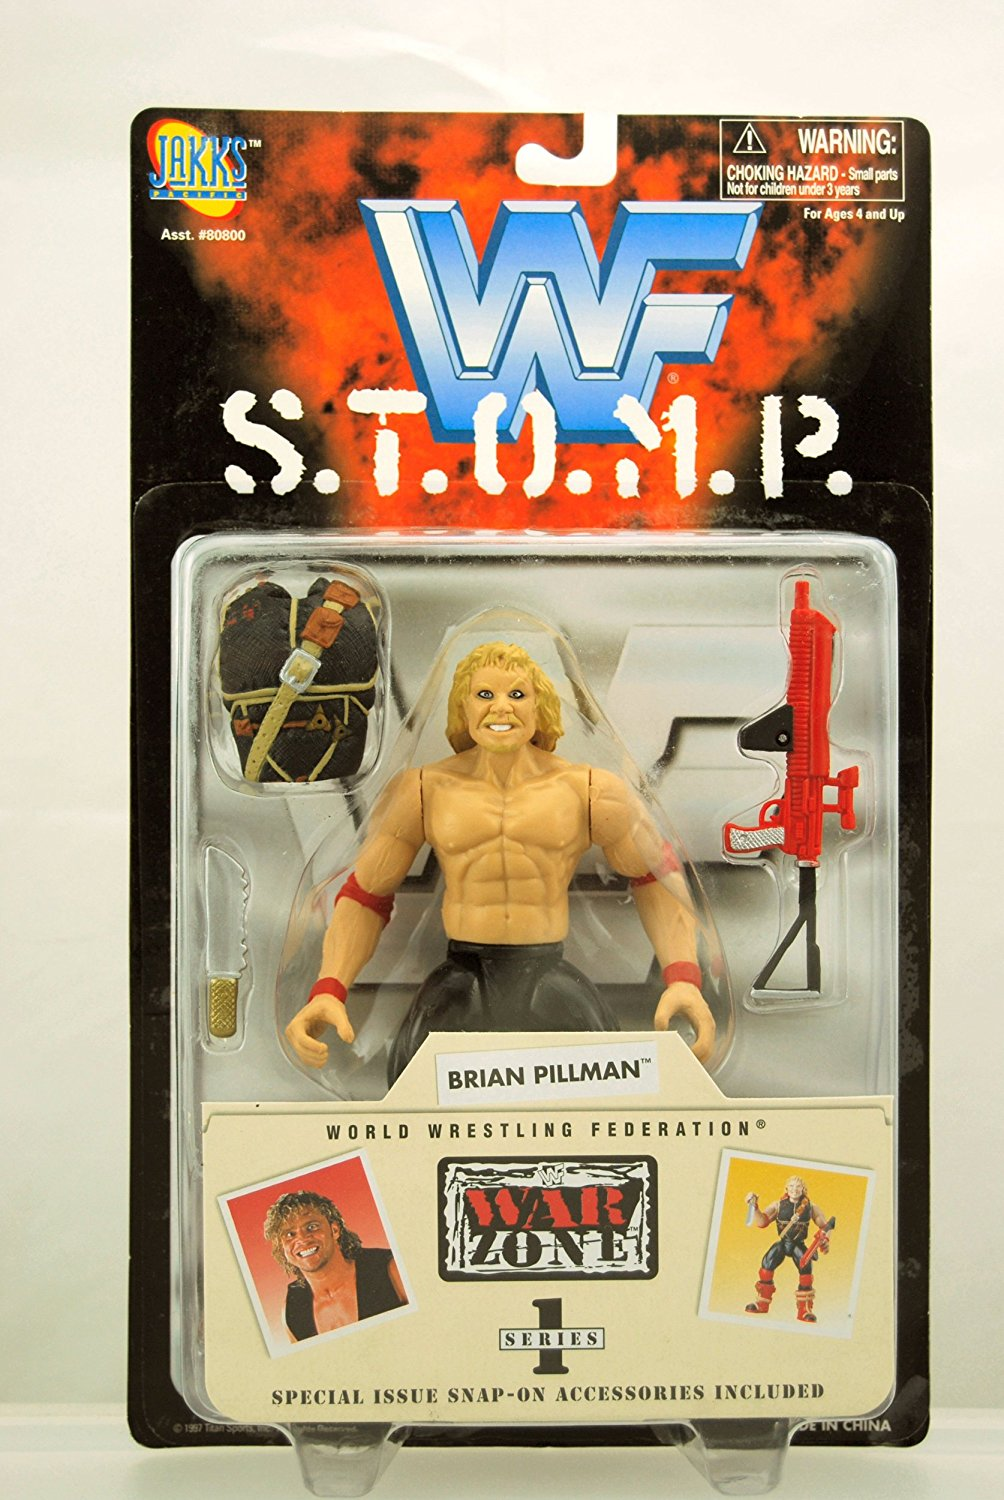 WWF S.T.O.M.P. Series - 1997 - War Zone Series 1 - Brian Pillman Action Figure - With Accessories - Jakks - WWE - Late Wrestling Star - Limited Edition - Collectible